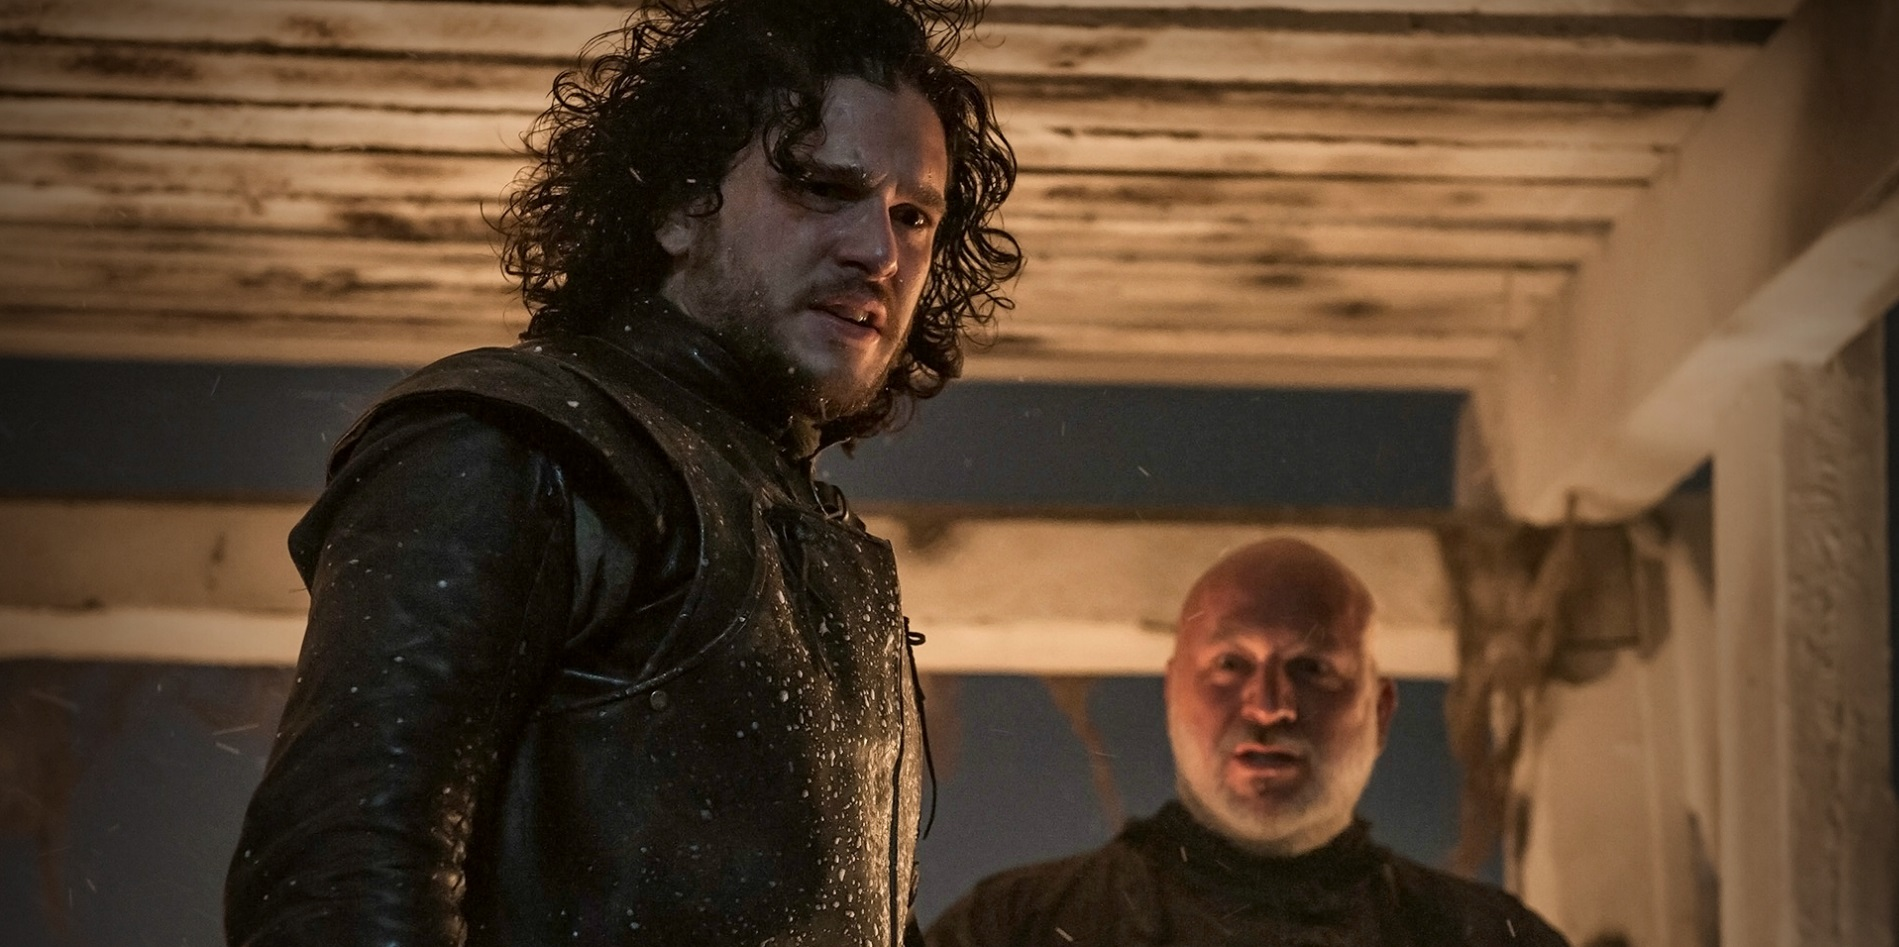 Game-of-Thrones-S4E9-Jon-and-Janos